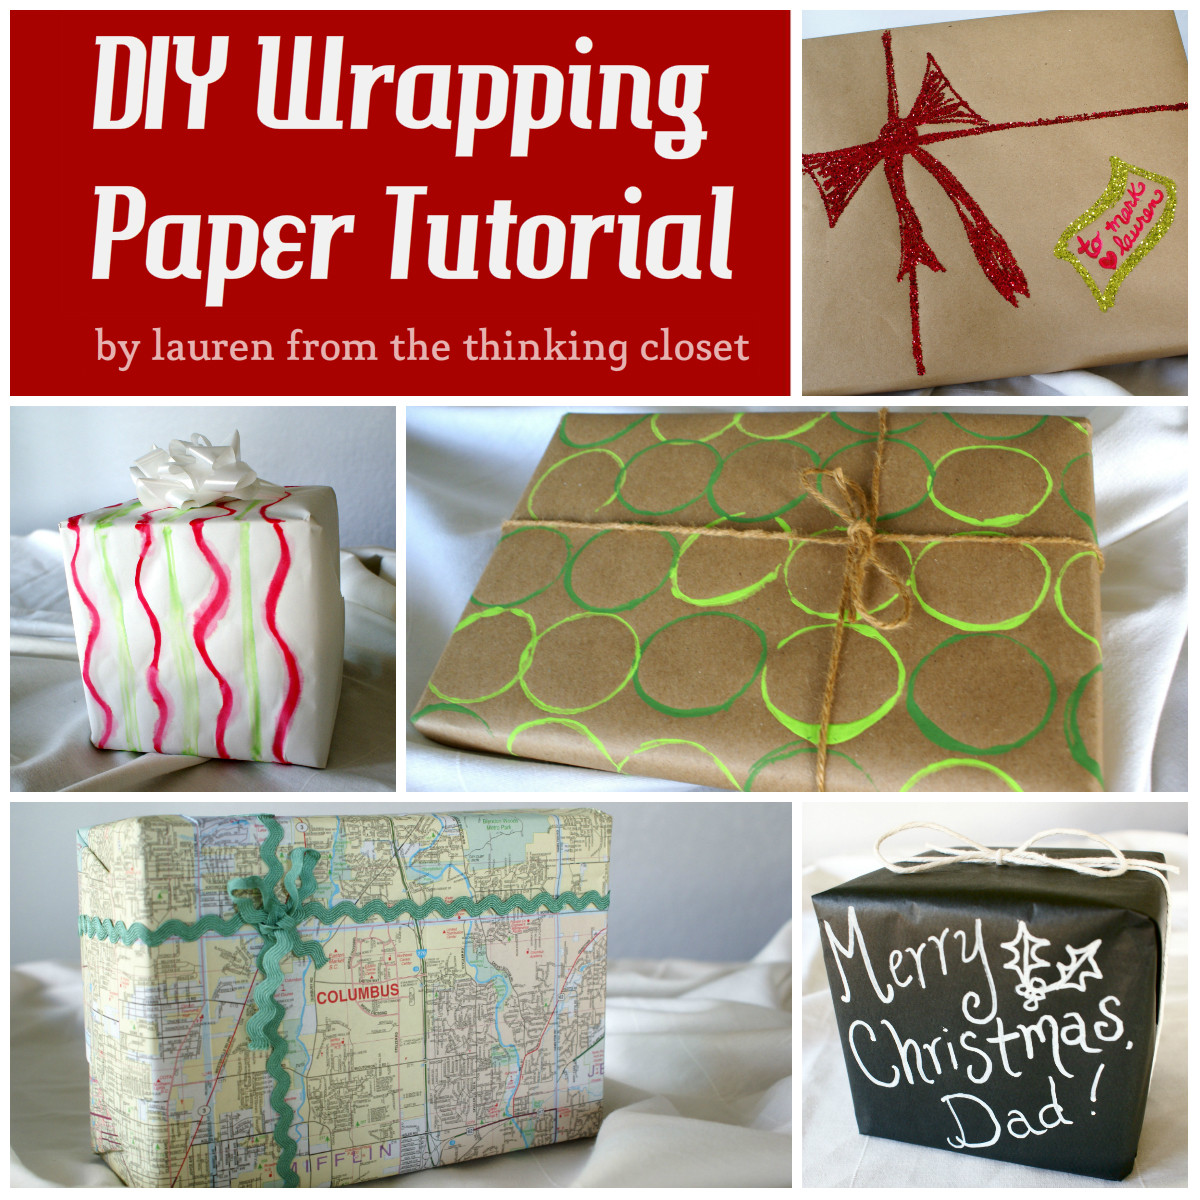 Best ideas about DIY Wrapping Paper . Save or Pin DIY Wrapping Paper Tutorial the thinking closet Now.